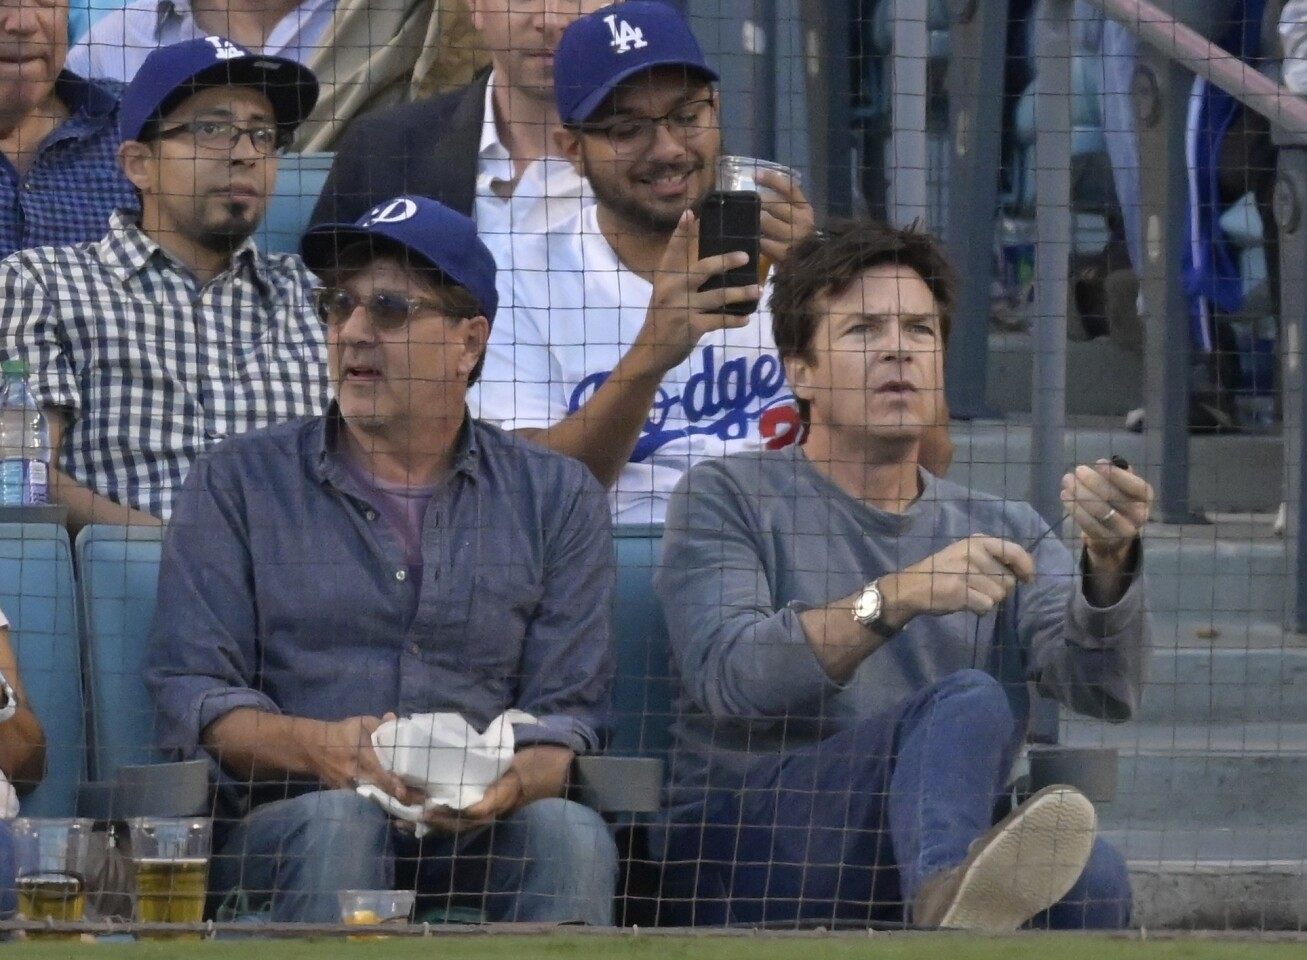 Actor Jason Bateman watches during the third inning of Game 3 of the National League Championship Series baseball game between the Milwaukee Brewers and the Los Angeles Dodgers Monday, Oct. 15, 2018, in Los Angeles. (AP Photo/Mark J. Terrill)